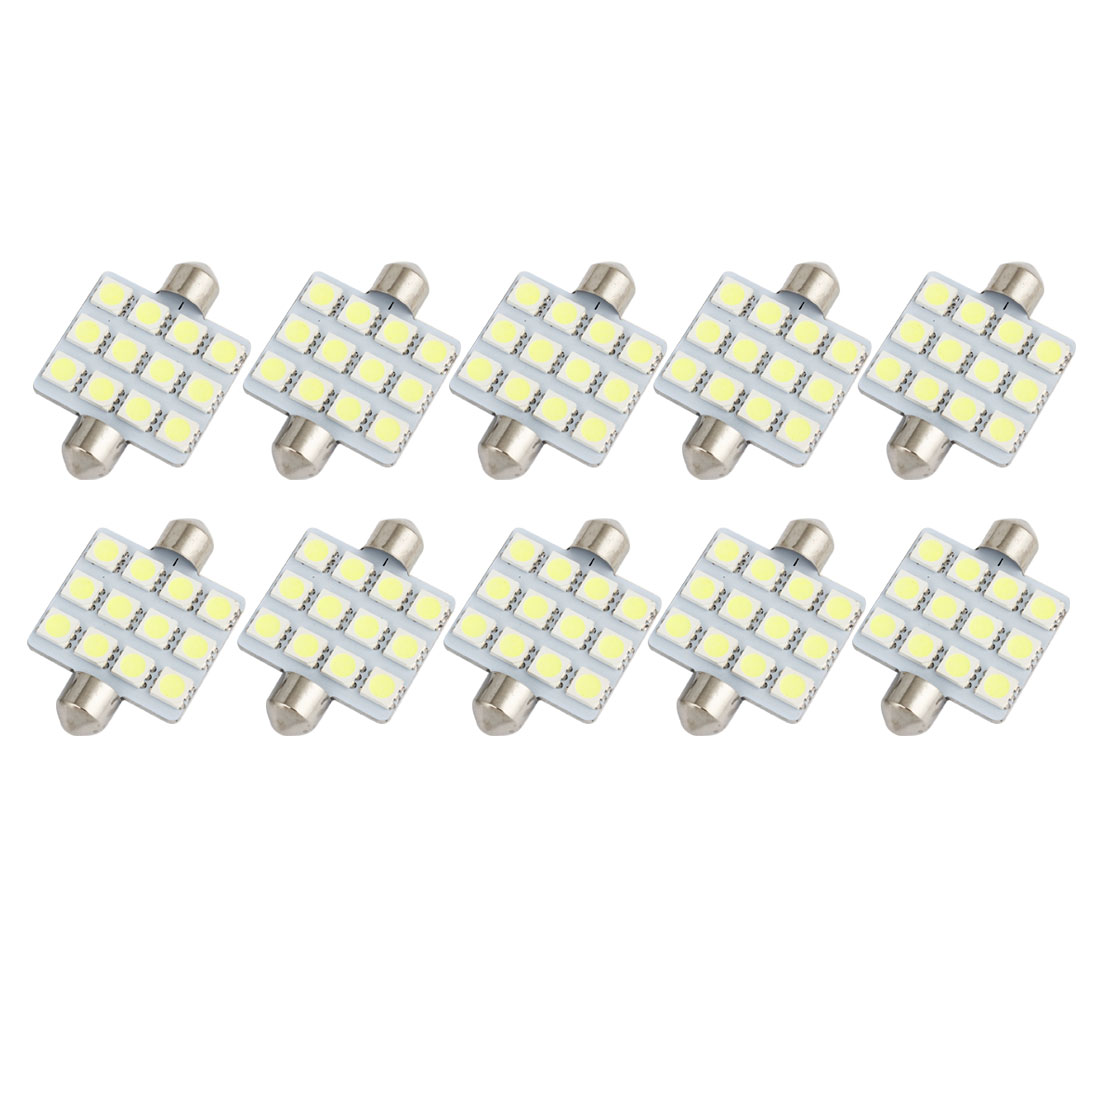 10pcs 41mm 5050 SMD 12-LED Festoon Dome Light White 6413 211-2 212-2 560 Internal